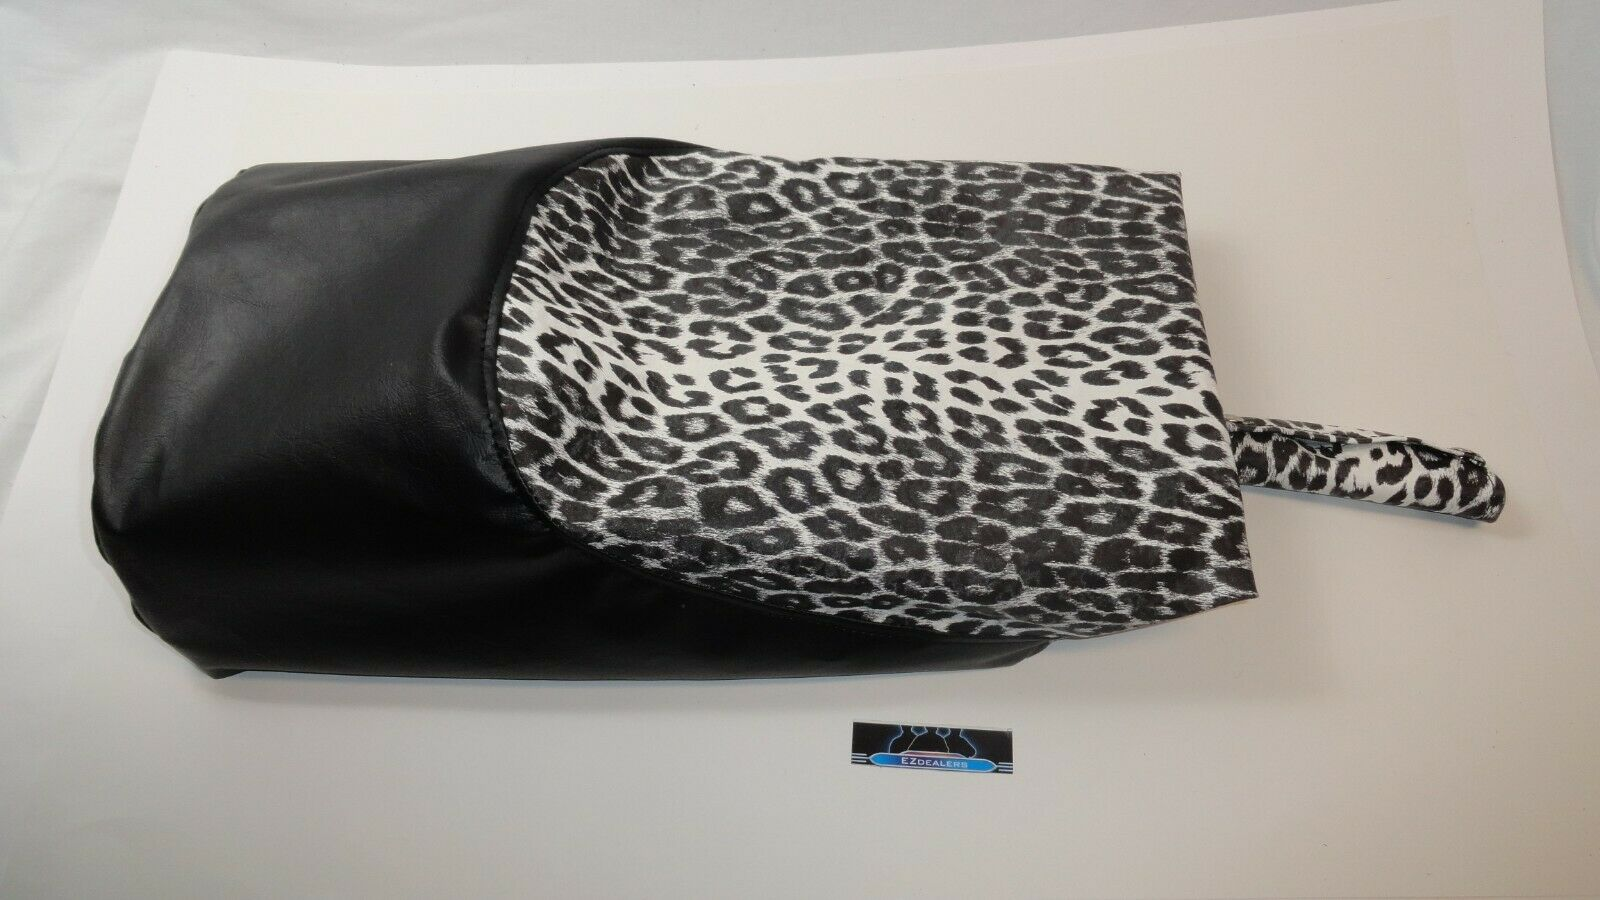 Arctic Cat Kitty Cat Seat Cover 1993-1999 White Leopard Pattern  w  Handle Bar  all products get up to 34% off